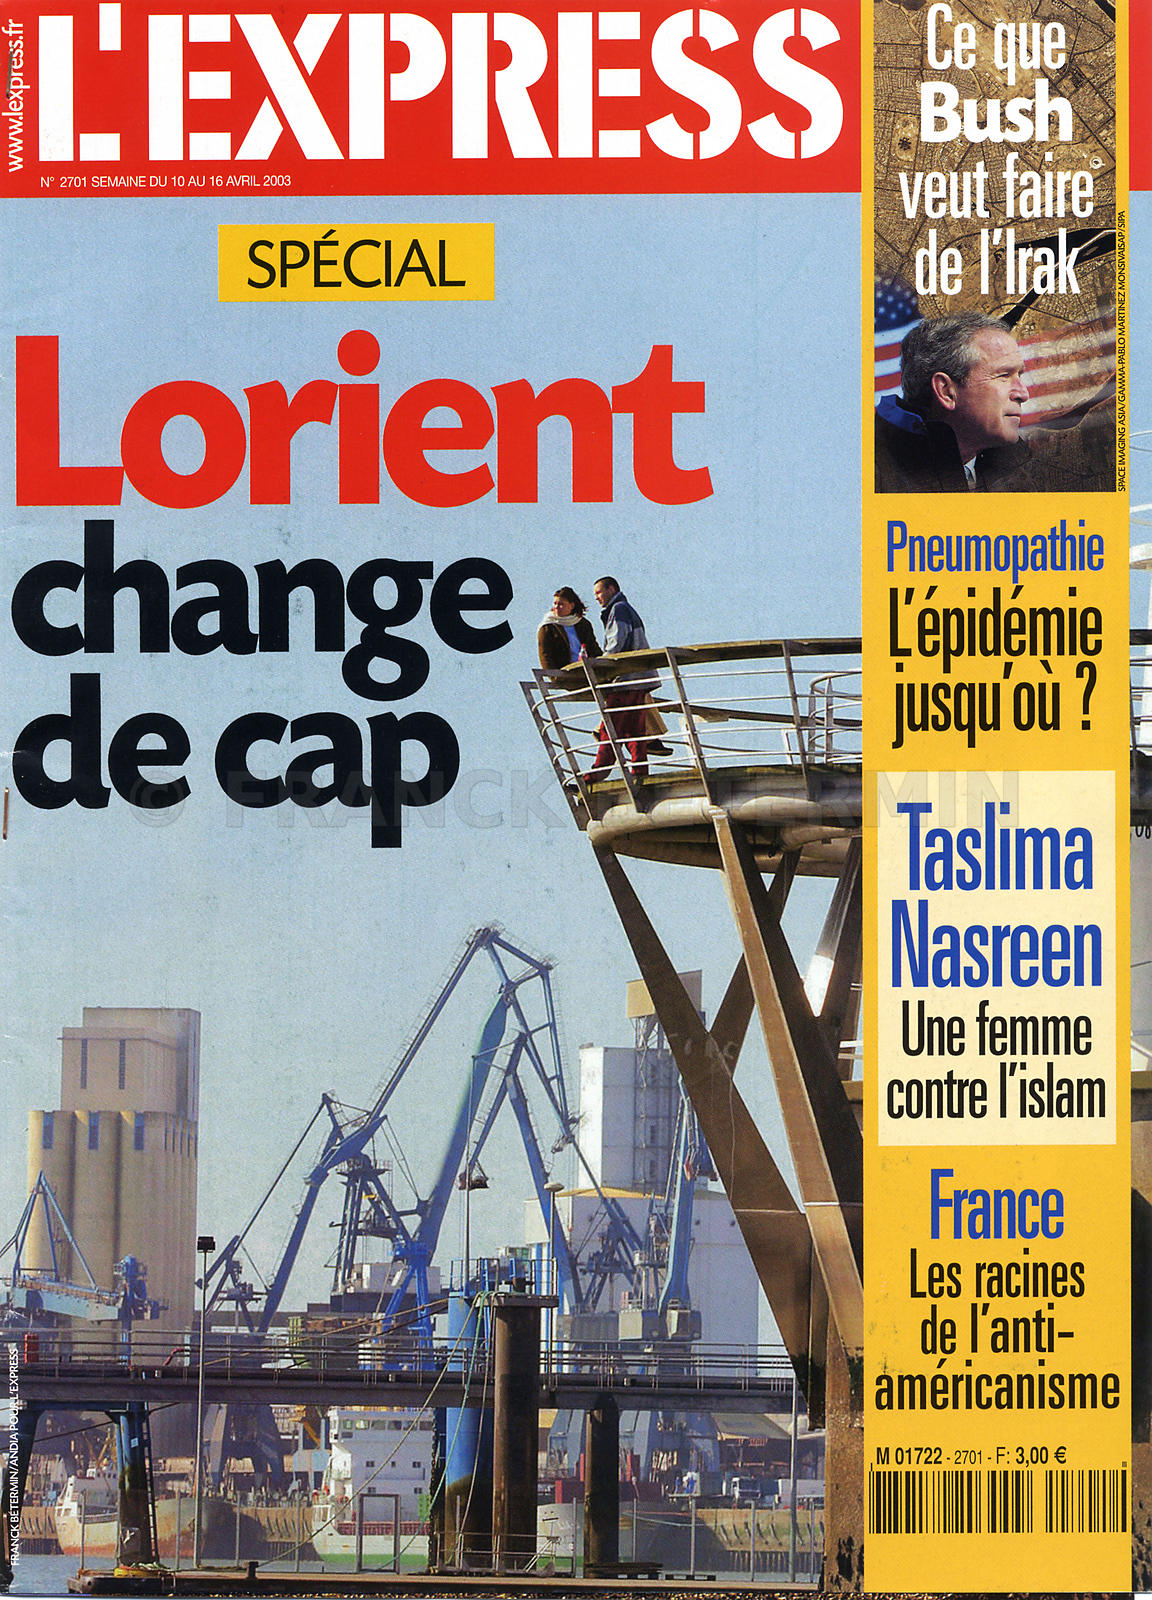 Express_Lorient_change_de_cap_original